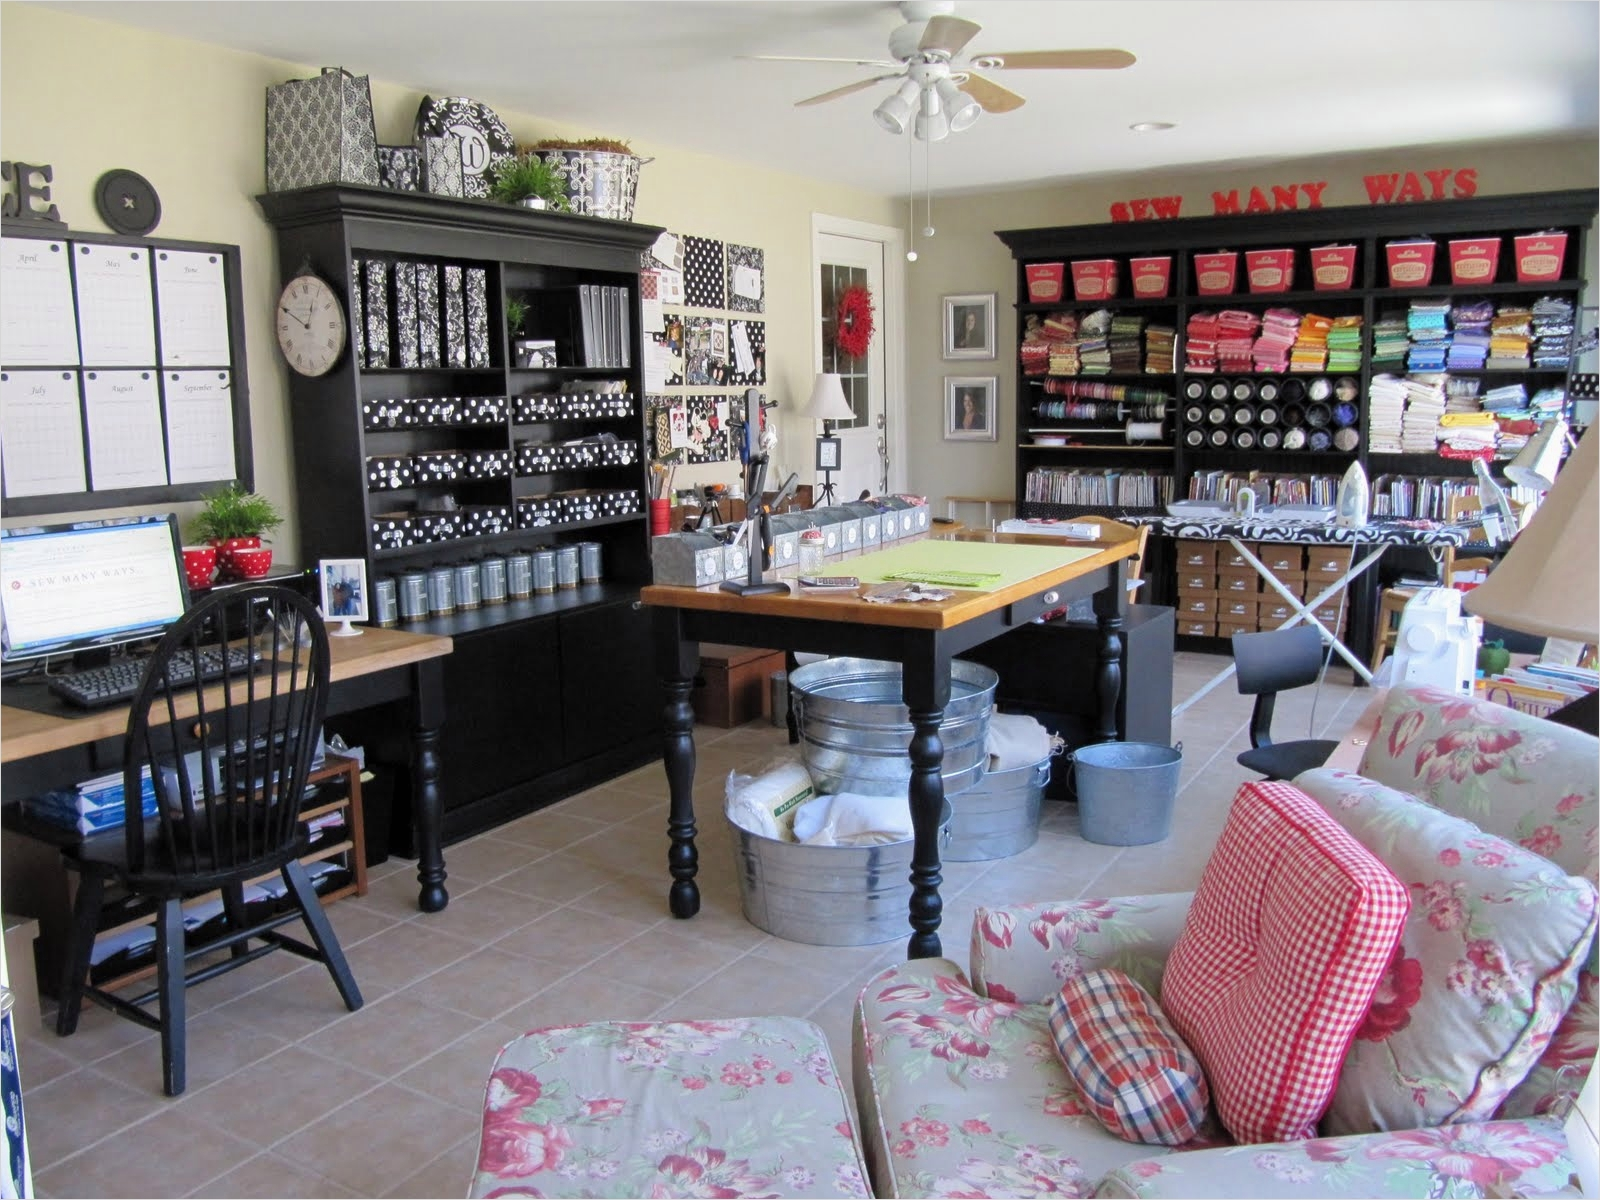 40 Creative Sewing Room Storage Ideas 48 Great Ideas organization Storage 1 4